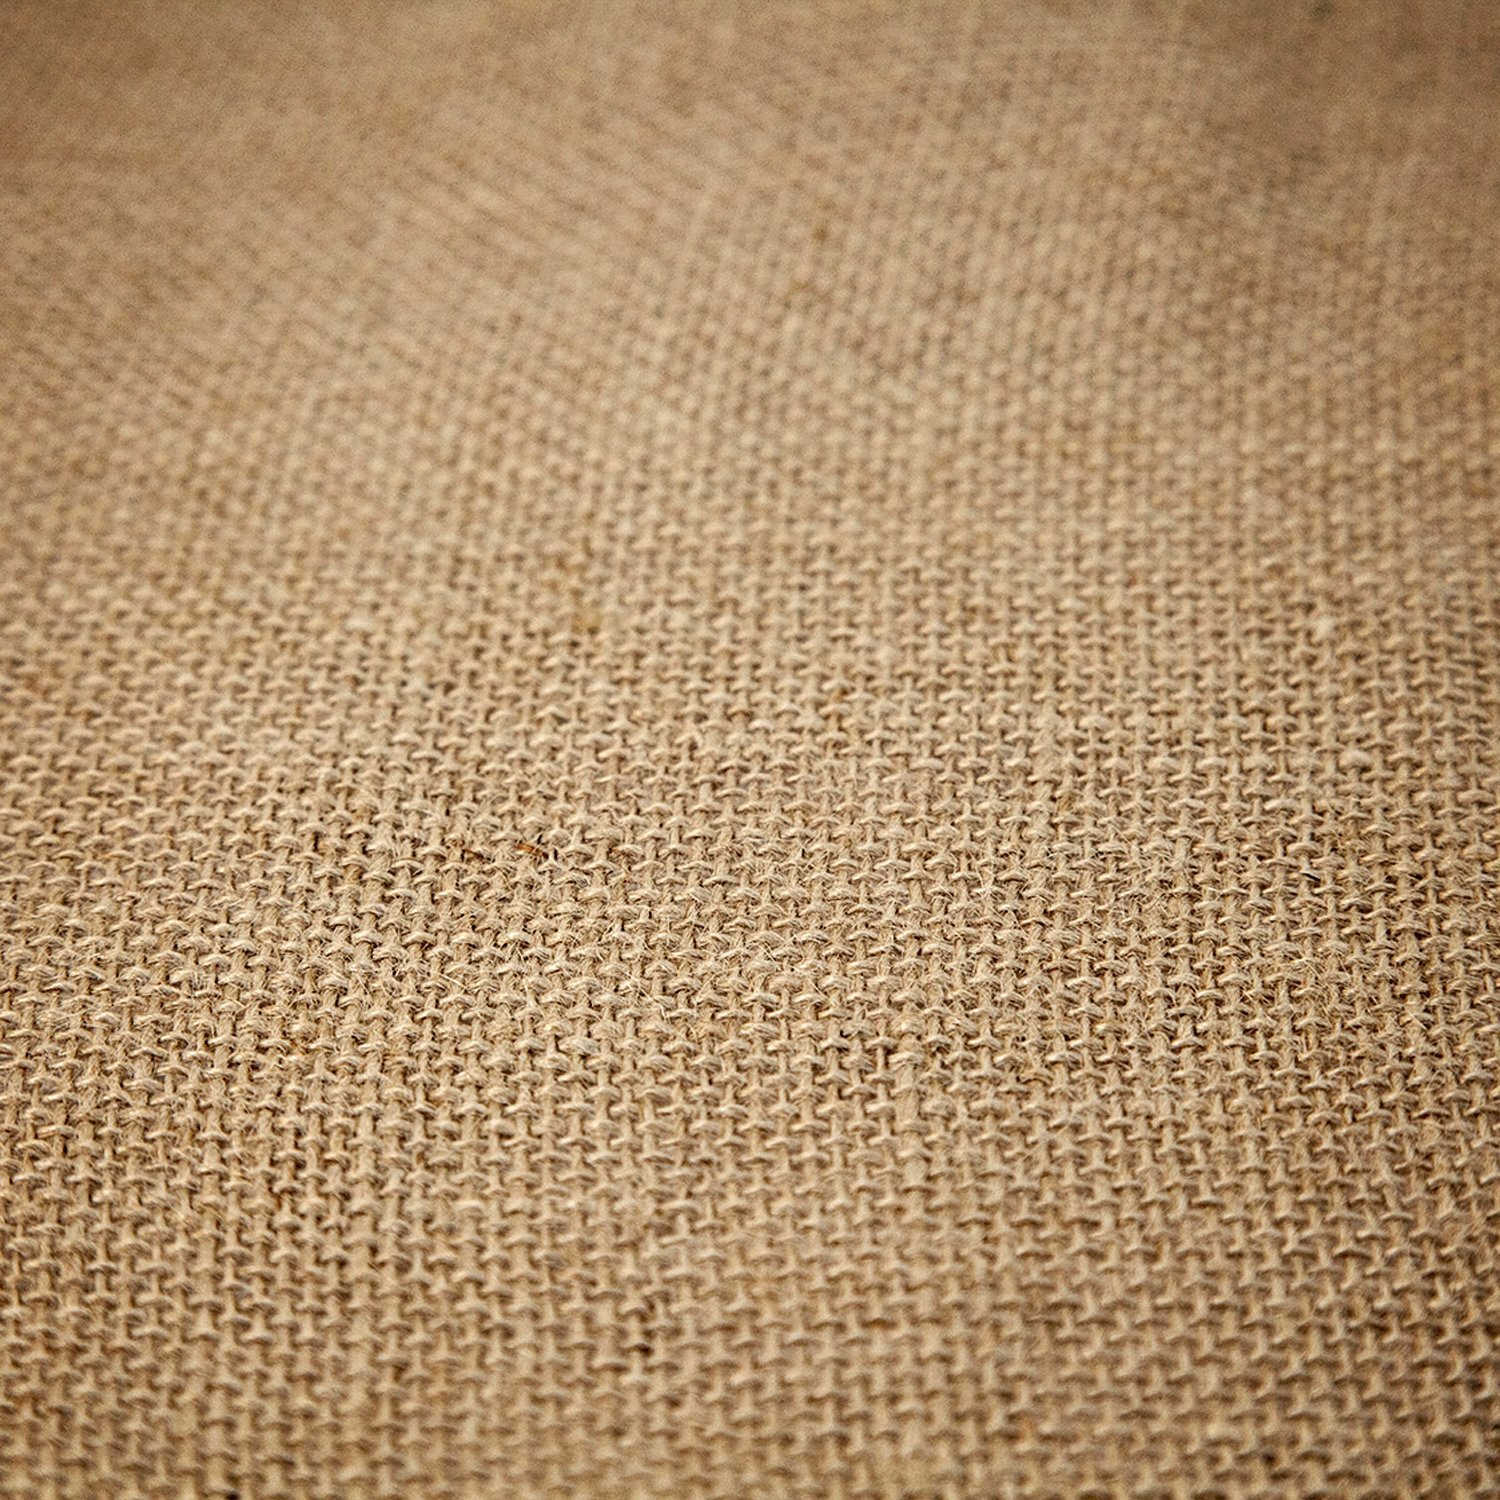 14'' x 50yd NO-FRAY NO-Mess Burlap Table Runner Roll ~ 14'' Wide x 50 Yards Long Table Runner Fabric w/Finished Edges. Perfect for Weddings, Placemat, Crafts. Decorate Without The Mess! by RC RICHCRAFT (Image #5)